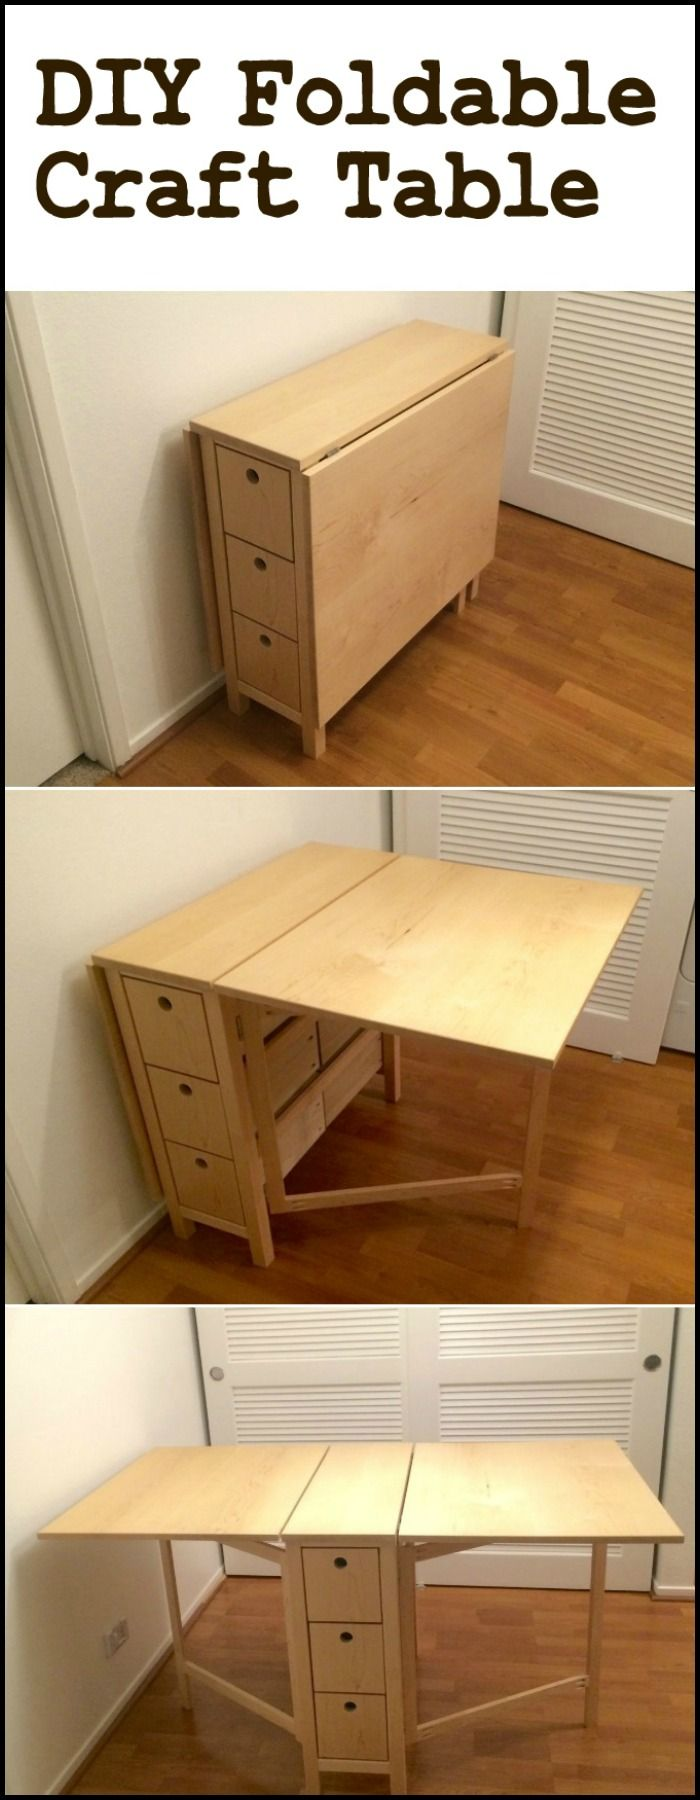 Save Space By Building Your Own Foldable Craft Table Diy